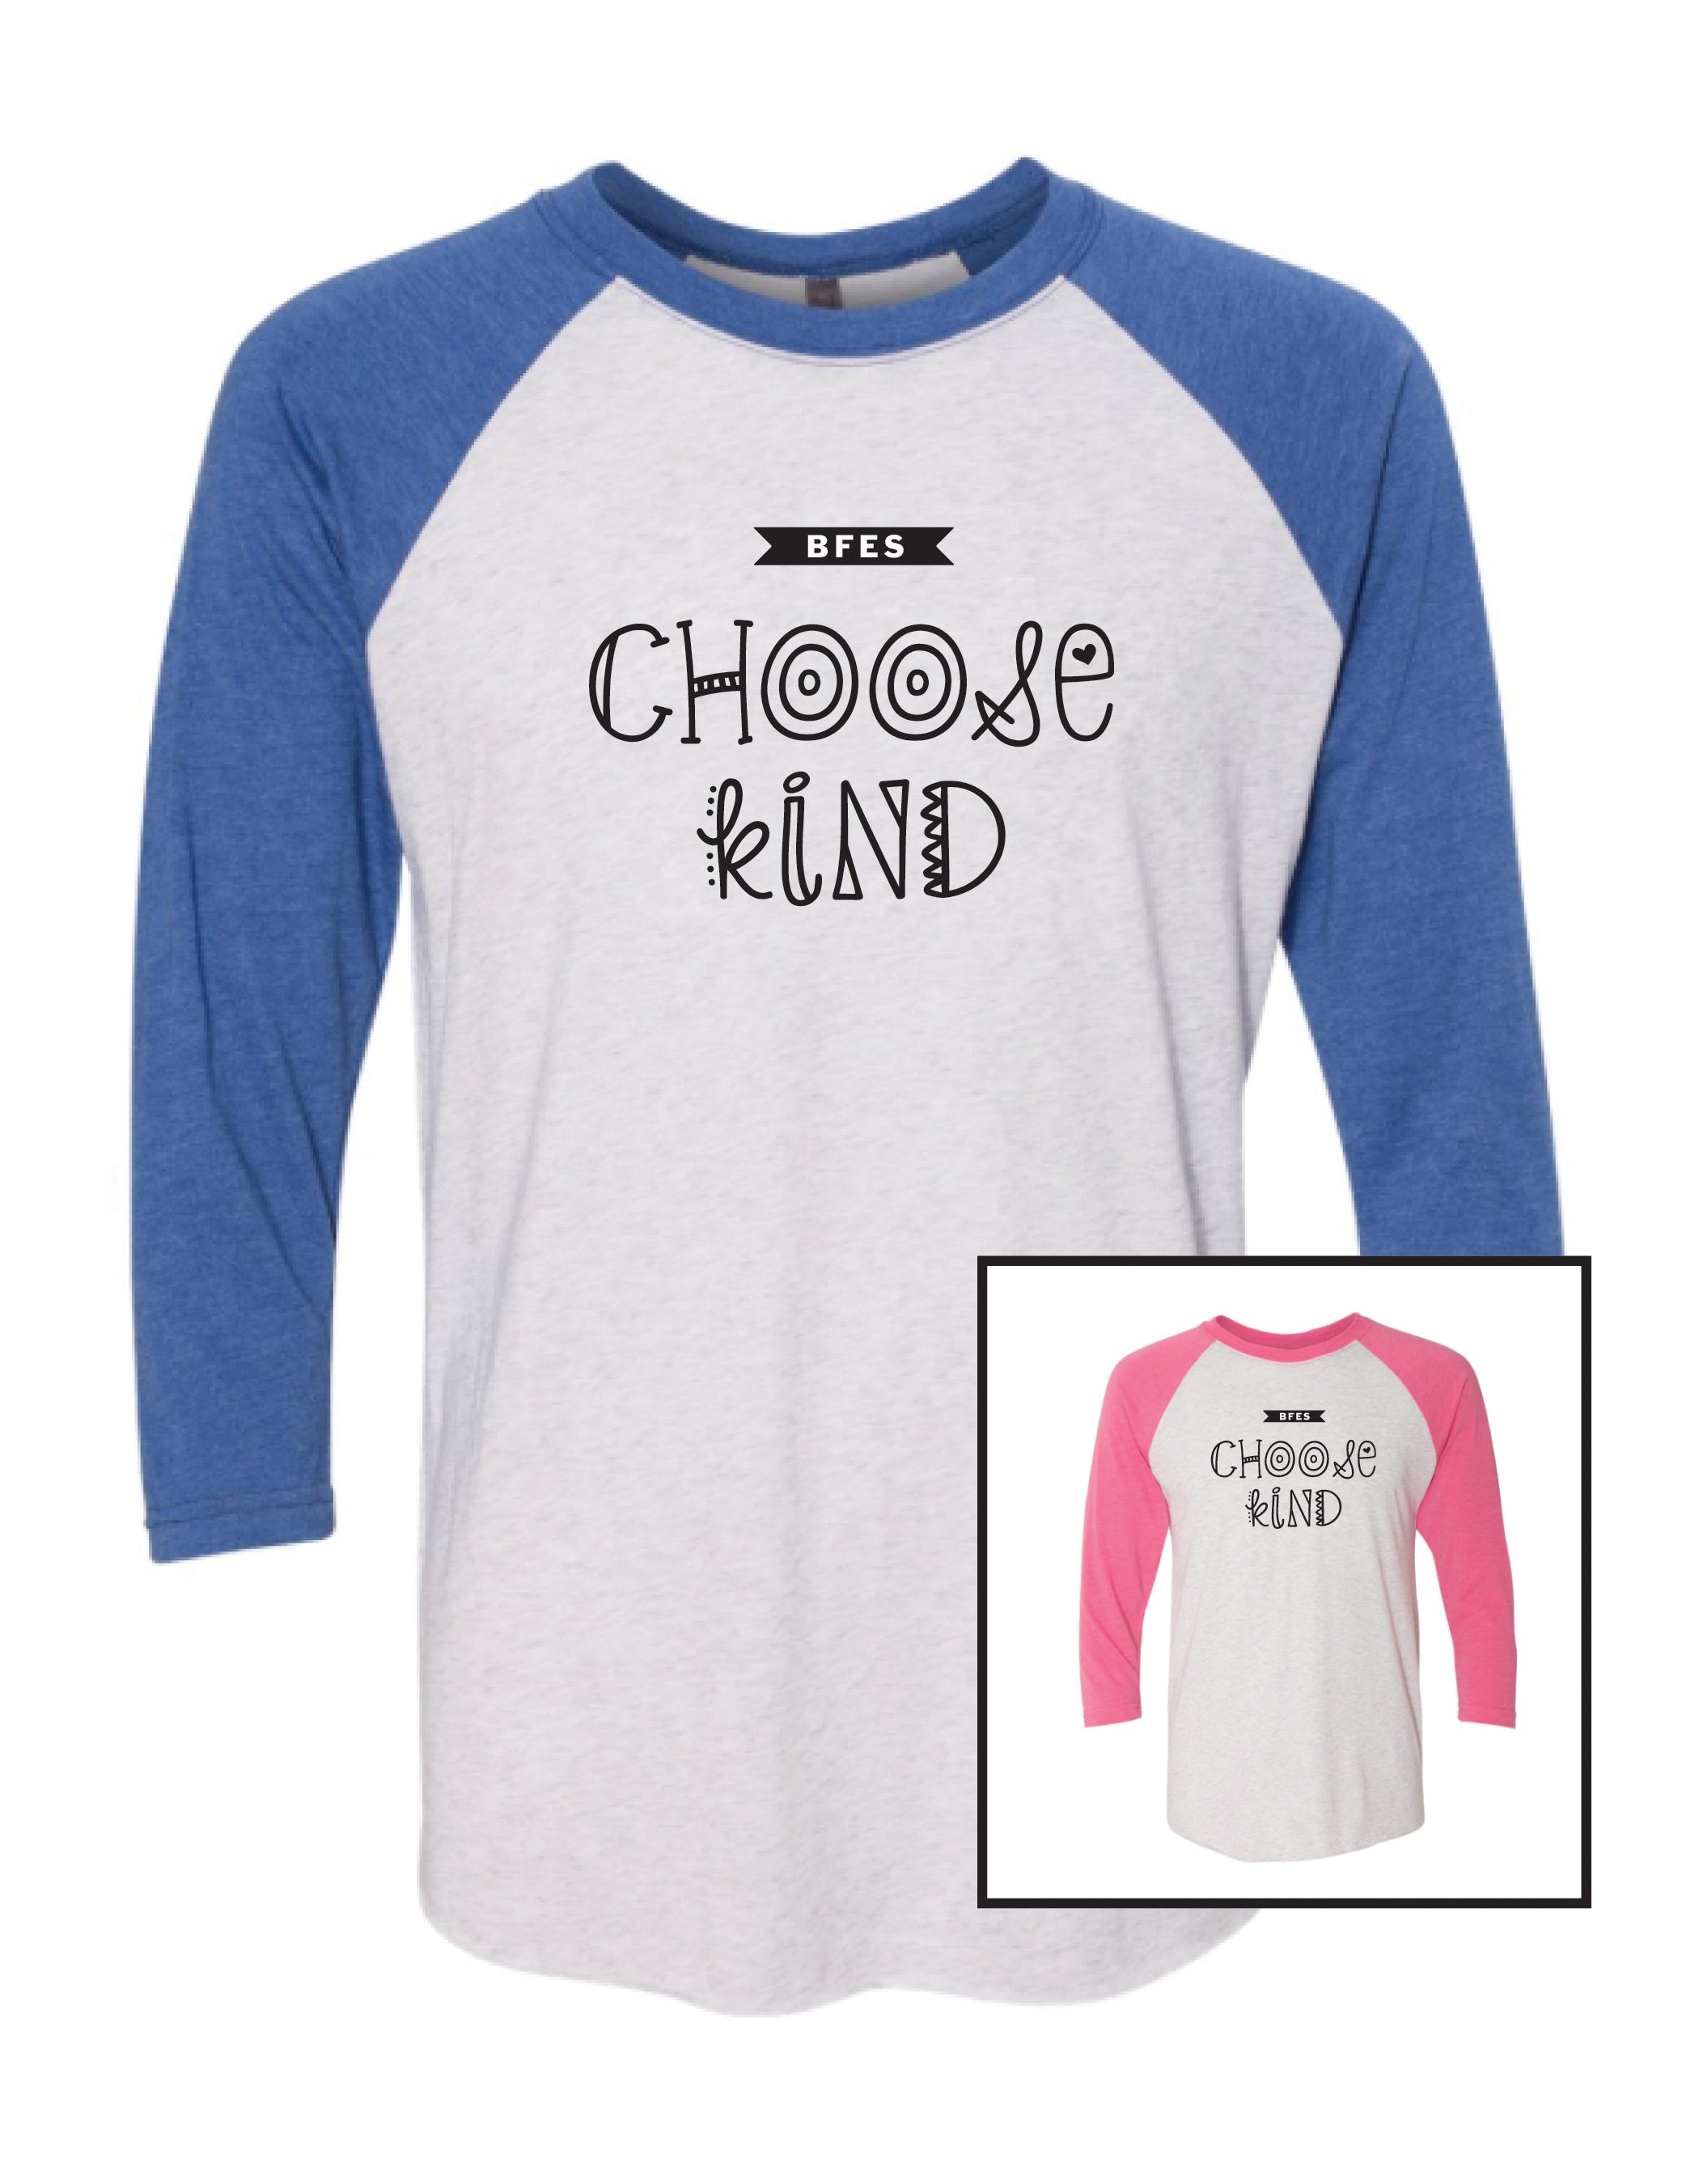 BFES Choose Kind Raglan Shirt- Adult Unisex and Youth